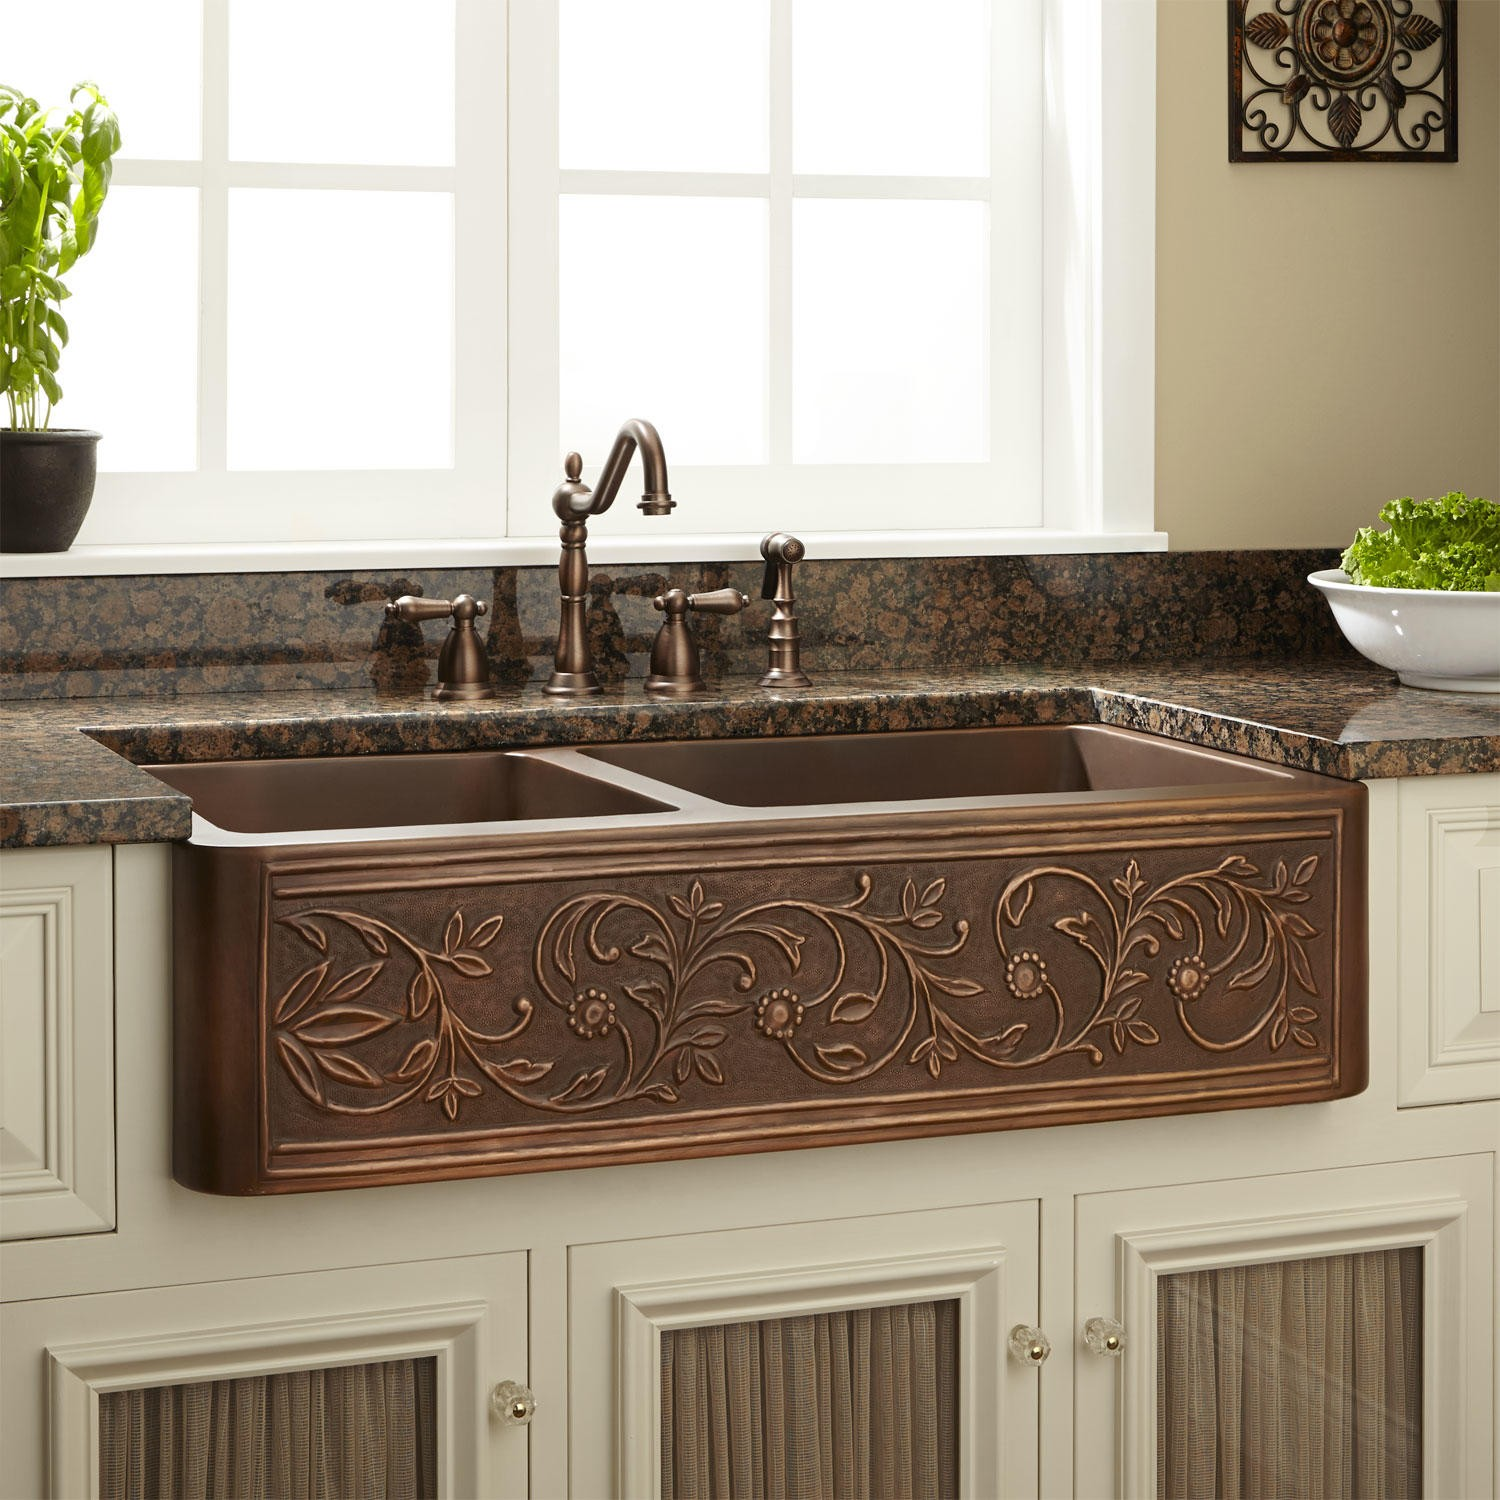 Sink: Wide Selection Of Menards Sinks In Many Styles And Sizes ...